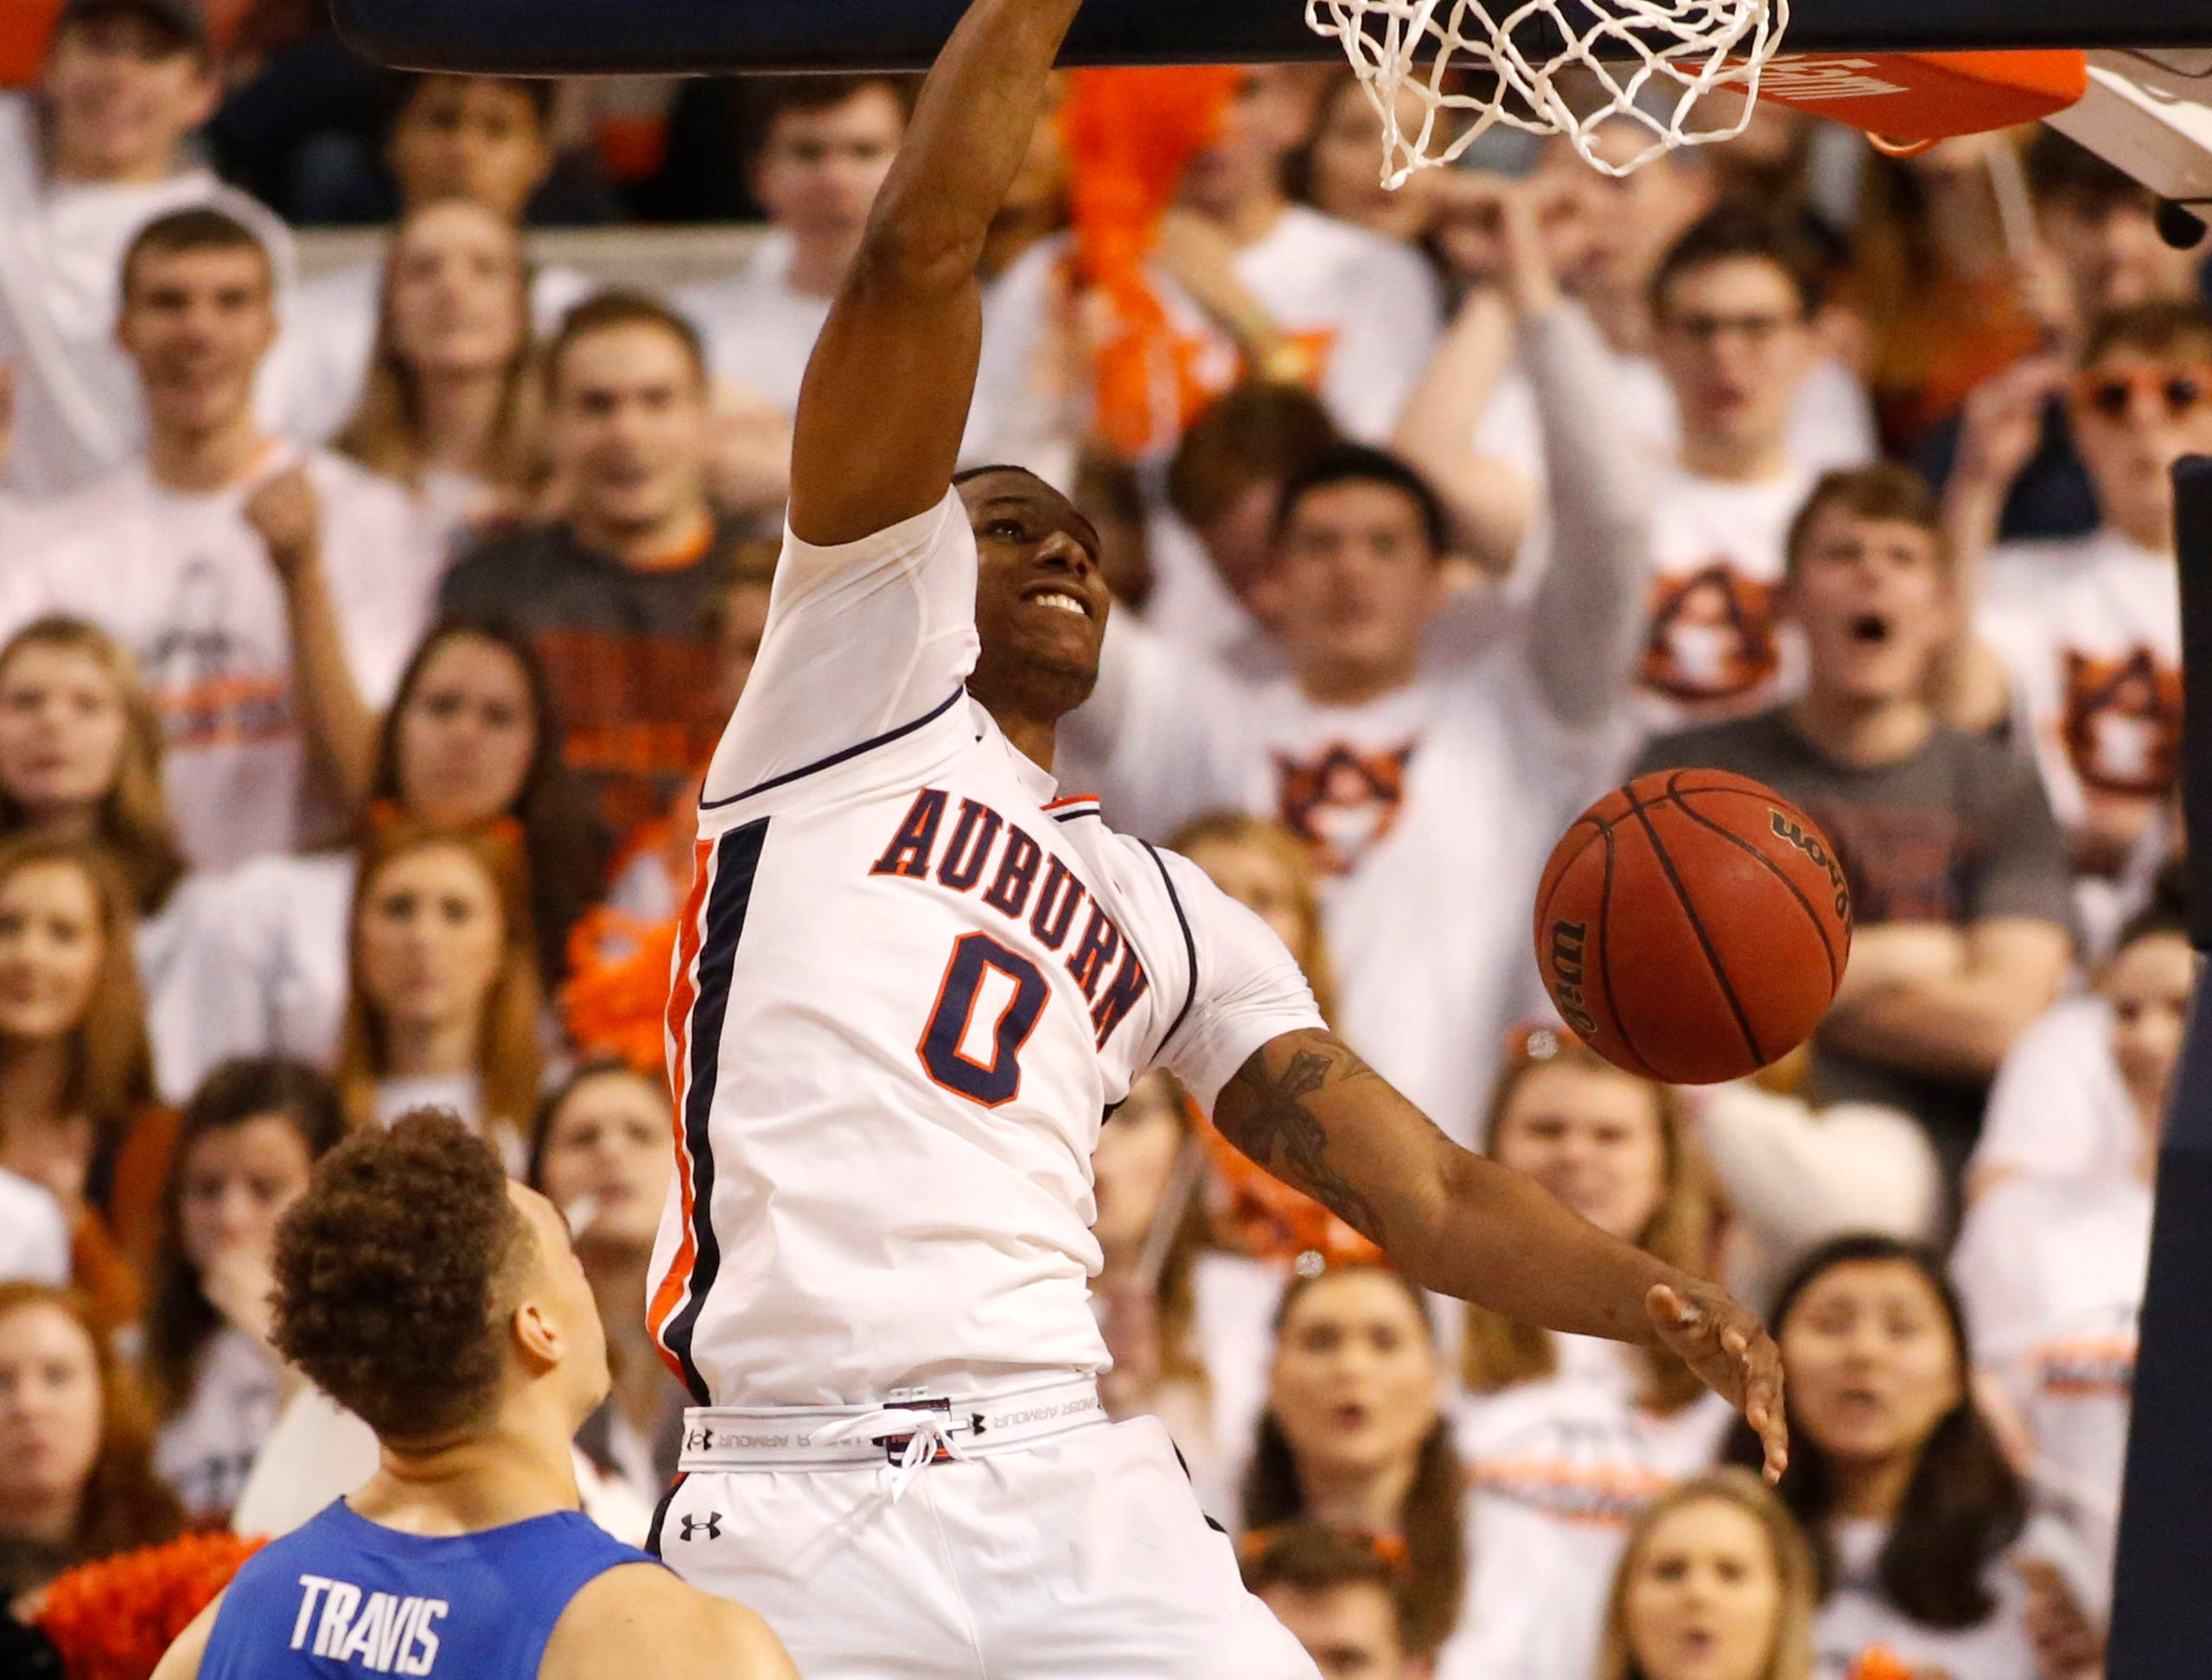 Jan 19, 2019; Auburn, AL, USA; Auburn Tigers forward Horace Spencer (0) makes a shot against the Kentucky Wildcats during the first half at Auburn Arena. Mandatory Credit: John Reed-USA TODAY Sports